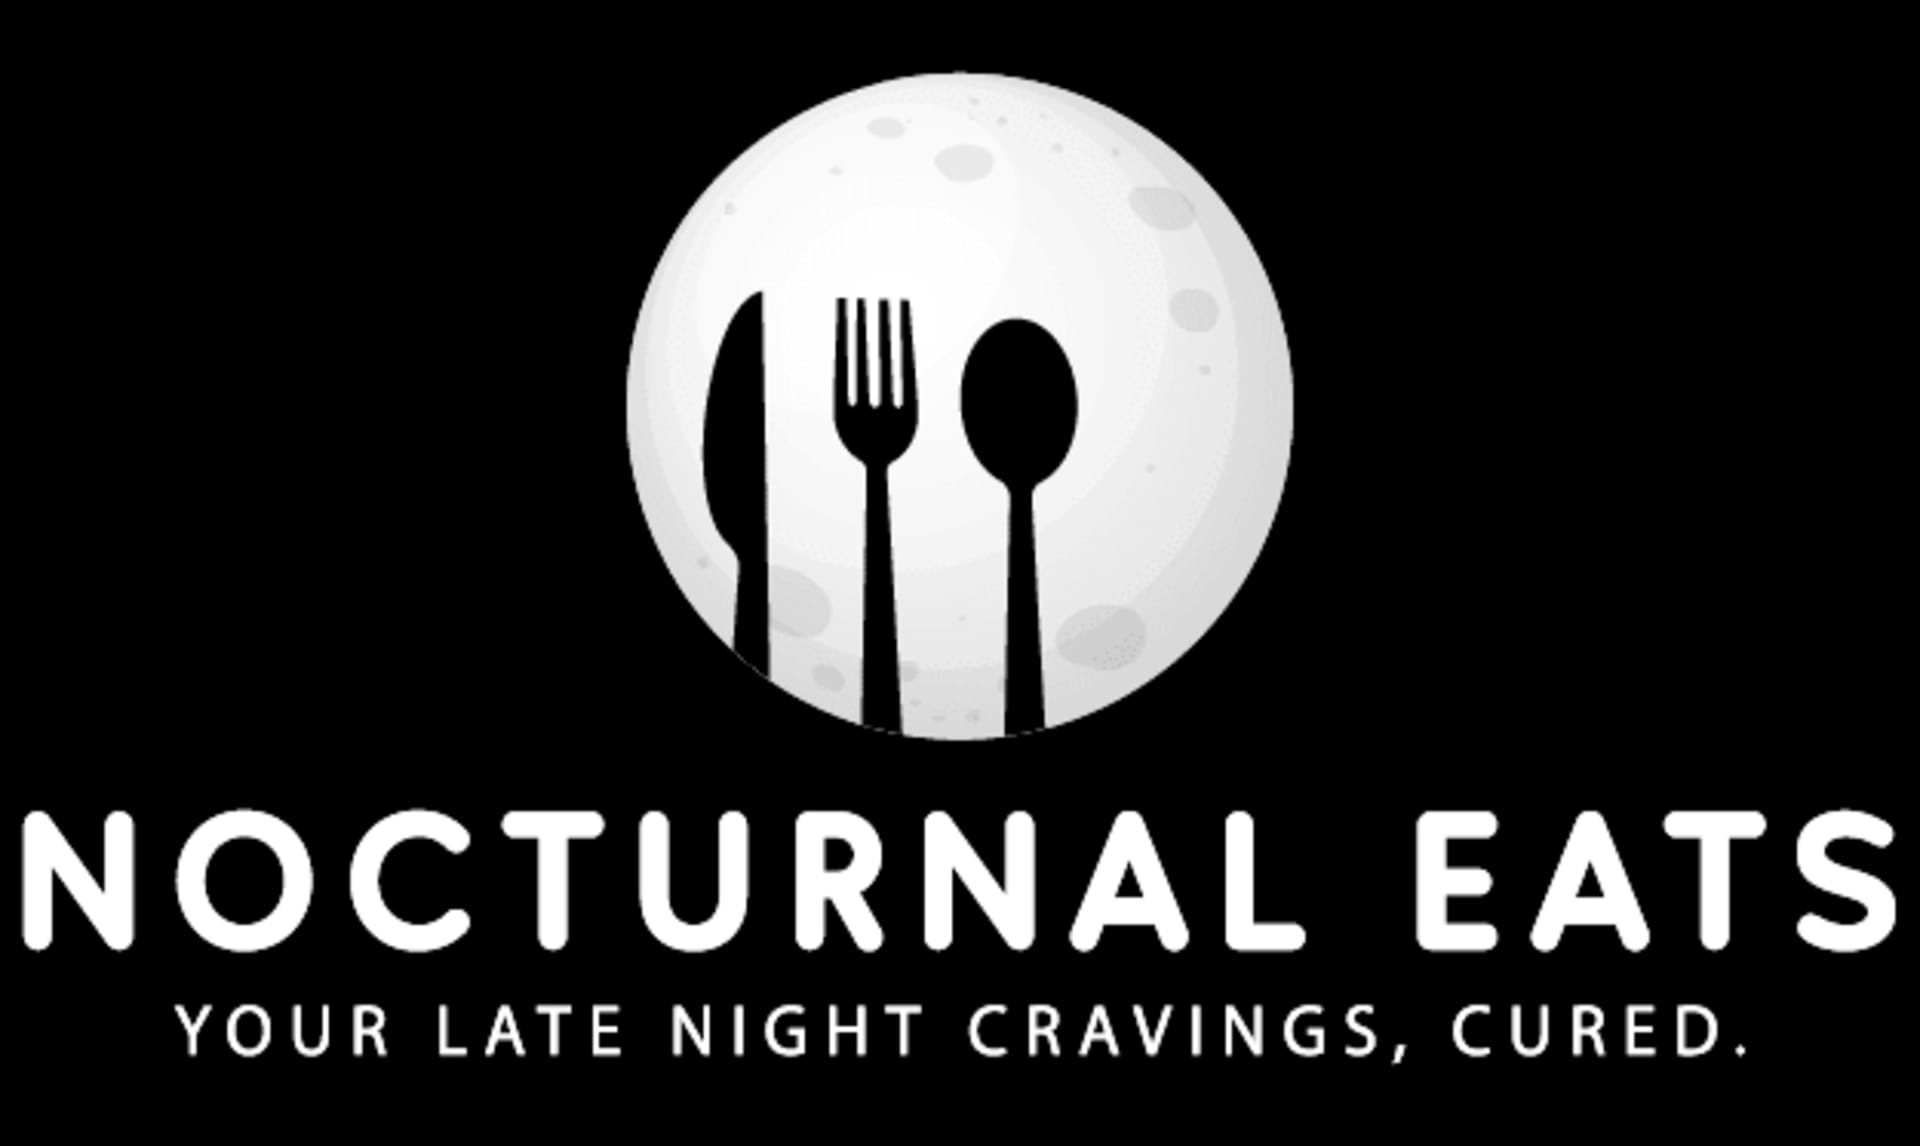 Nocturnal Eats - Your Late Night Cravings, Cured. Logo